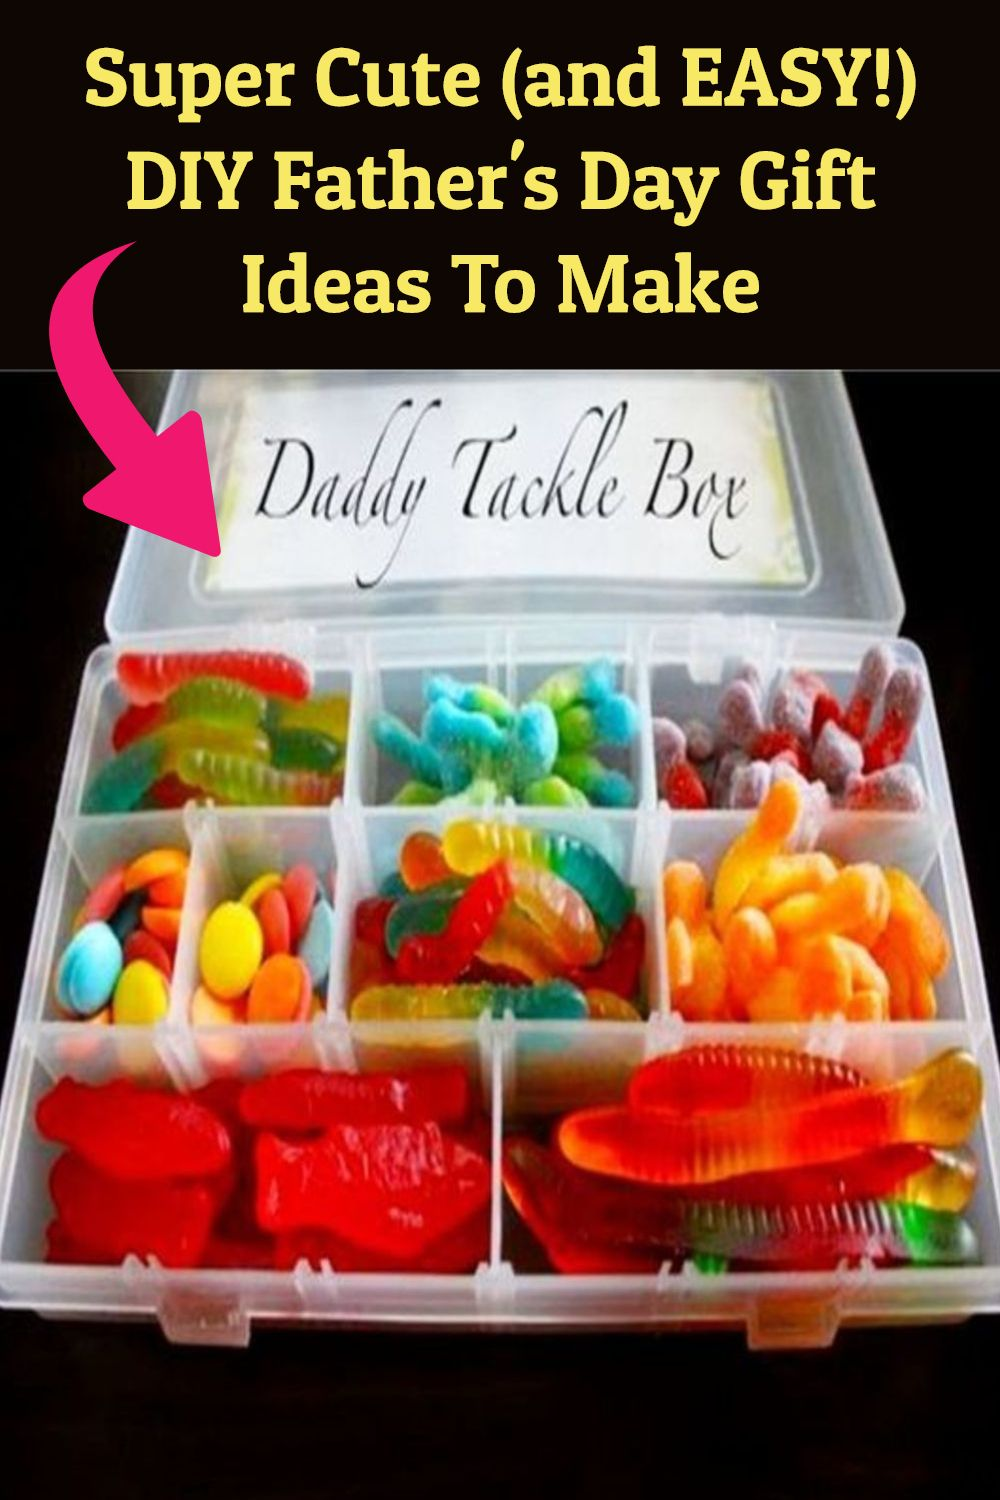 Super Cute (and EASY!) DIY Father's Day Gift Ideas To Make